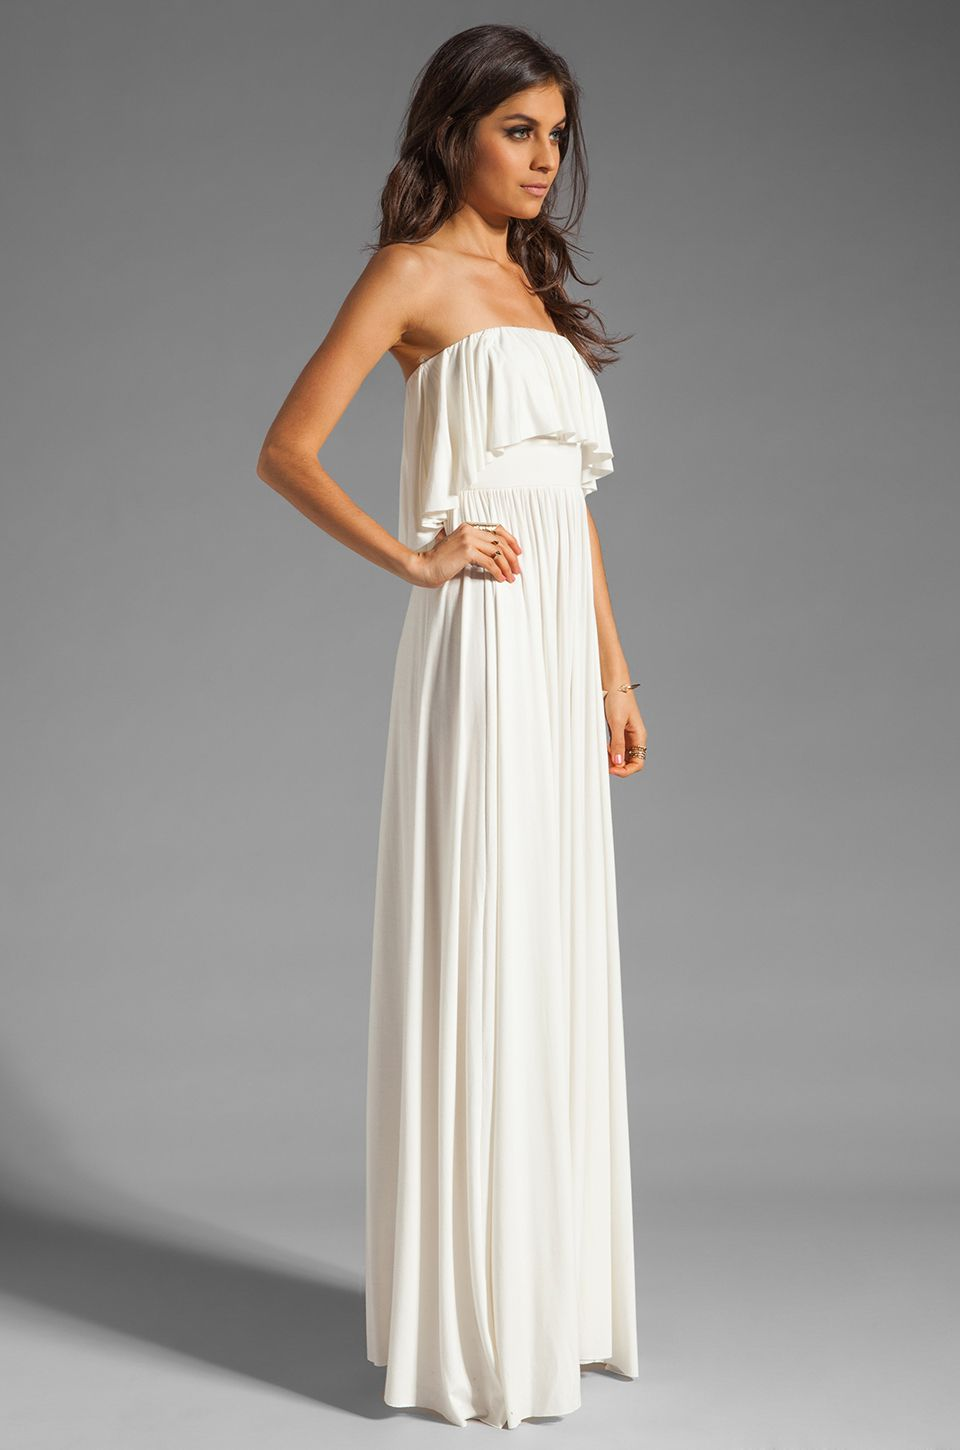 strapless-maxi-dress- | Straplees Maxi Dress | Pinterest ...